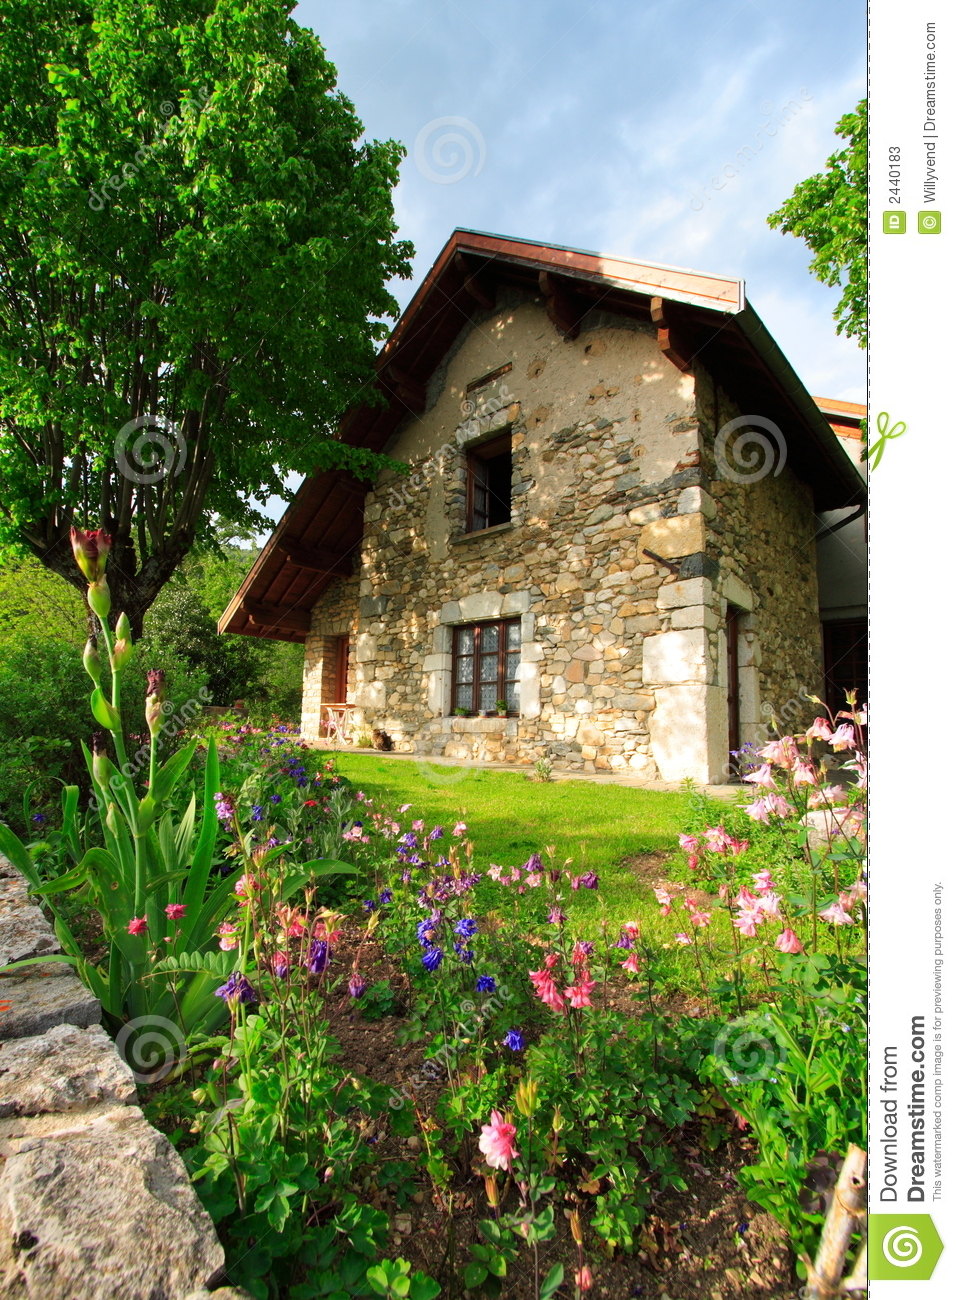 Garden and house stock photos image 2440183 for French countryside real estate